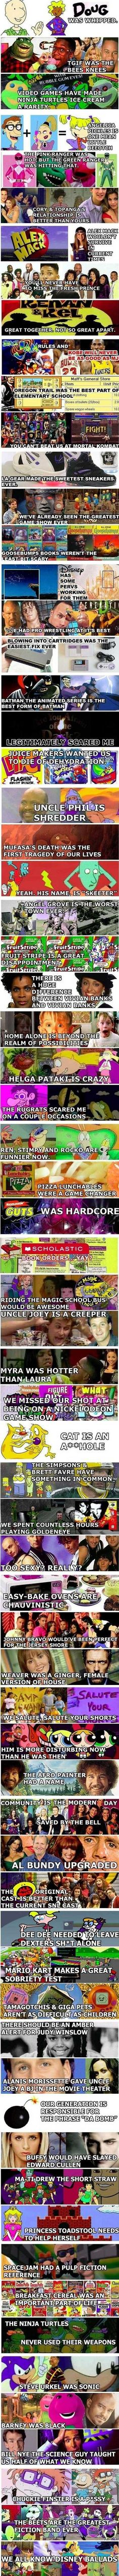 Being a 90's kid was awesome.